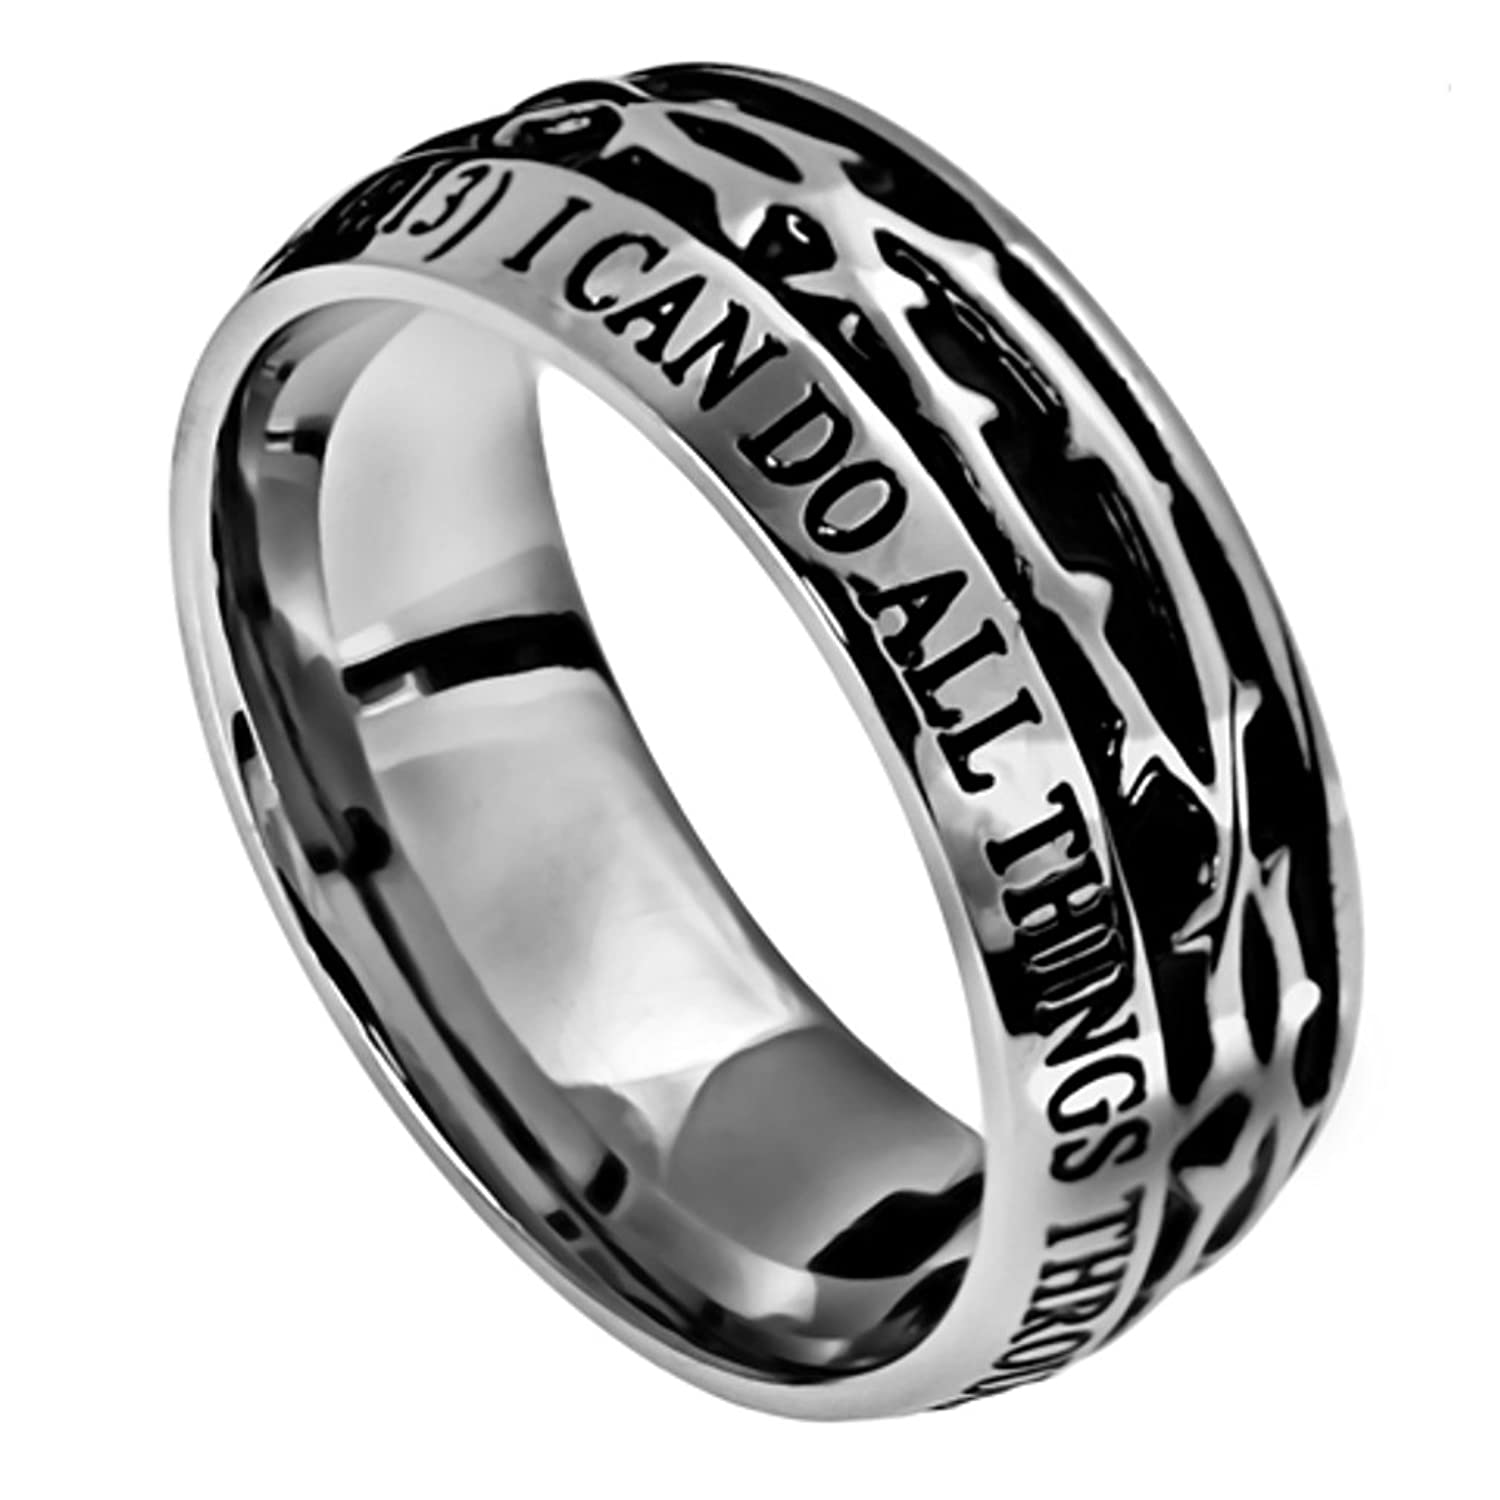 Philippians 4:13 Crown of Thorns Ring, Stainless Steel, Christian ...